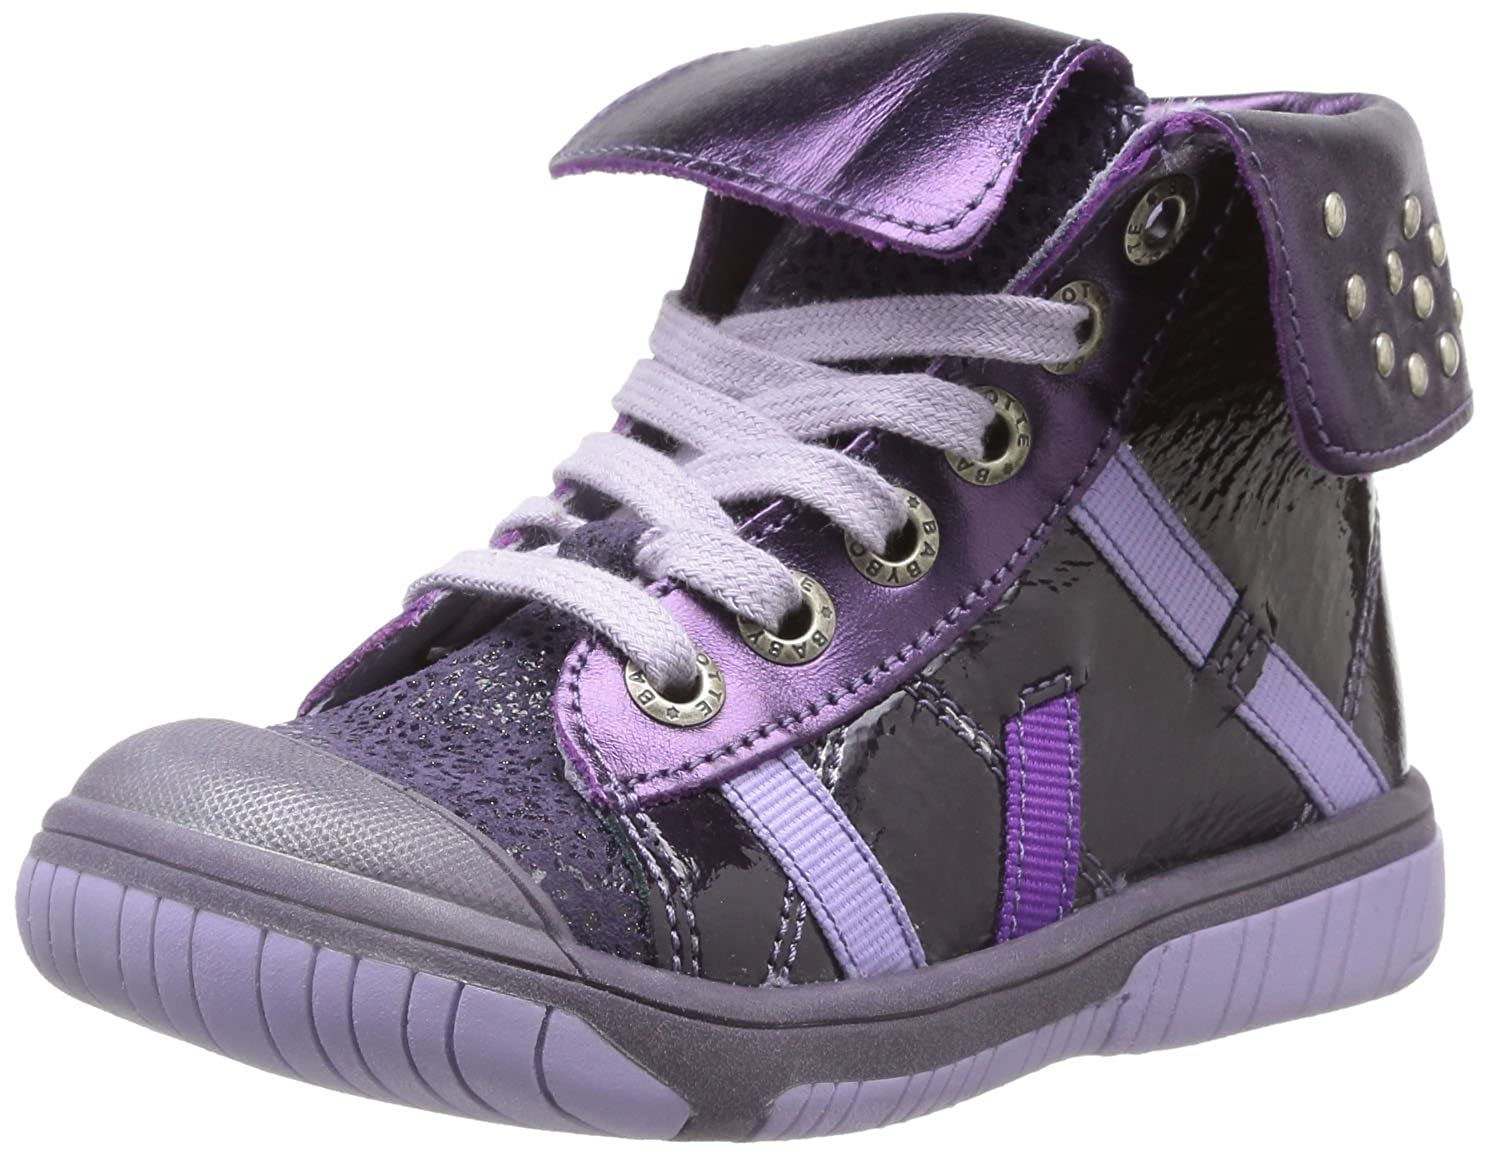 Babybotte Artiklou, Baskets mode fille Baskets mode fille - Violet (061 Violet) 20 EU (4 UK) (5 US) 1b81582